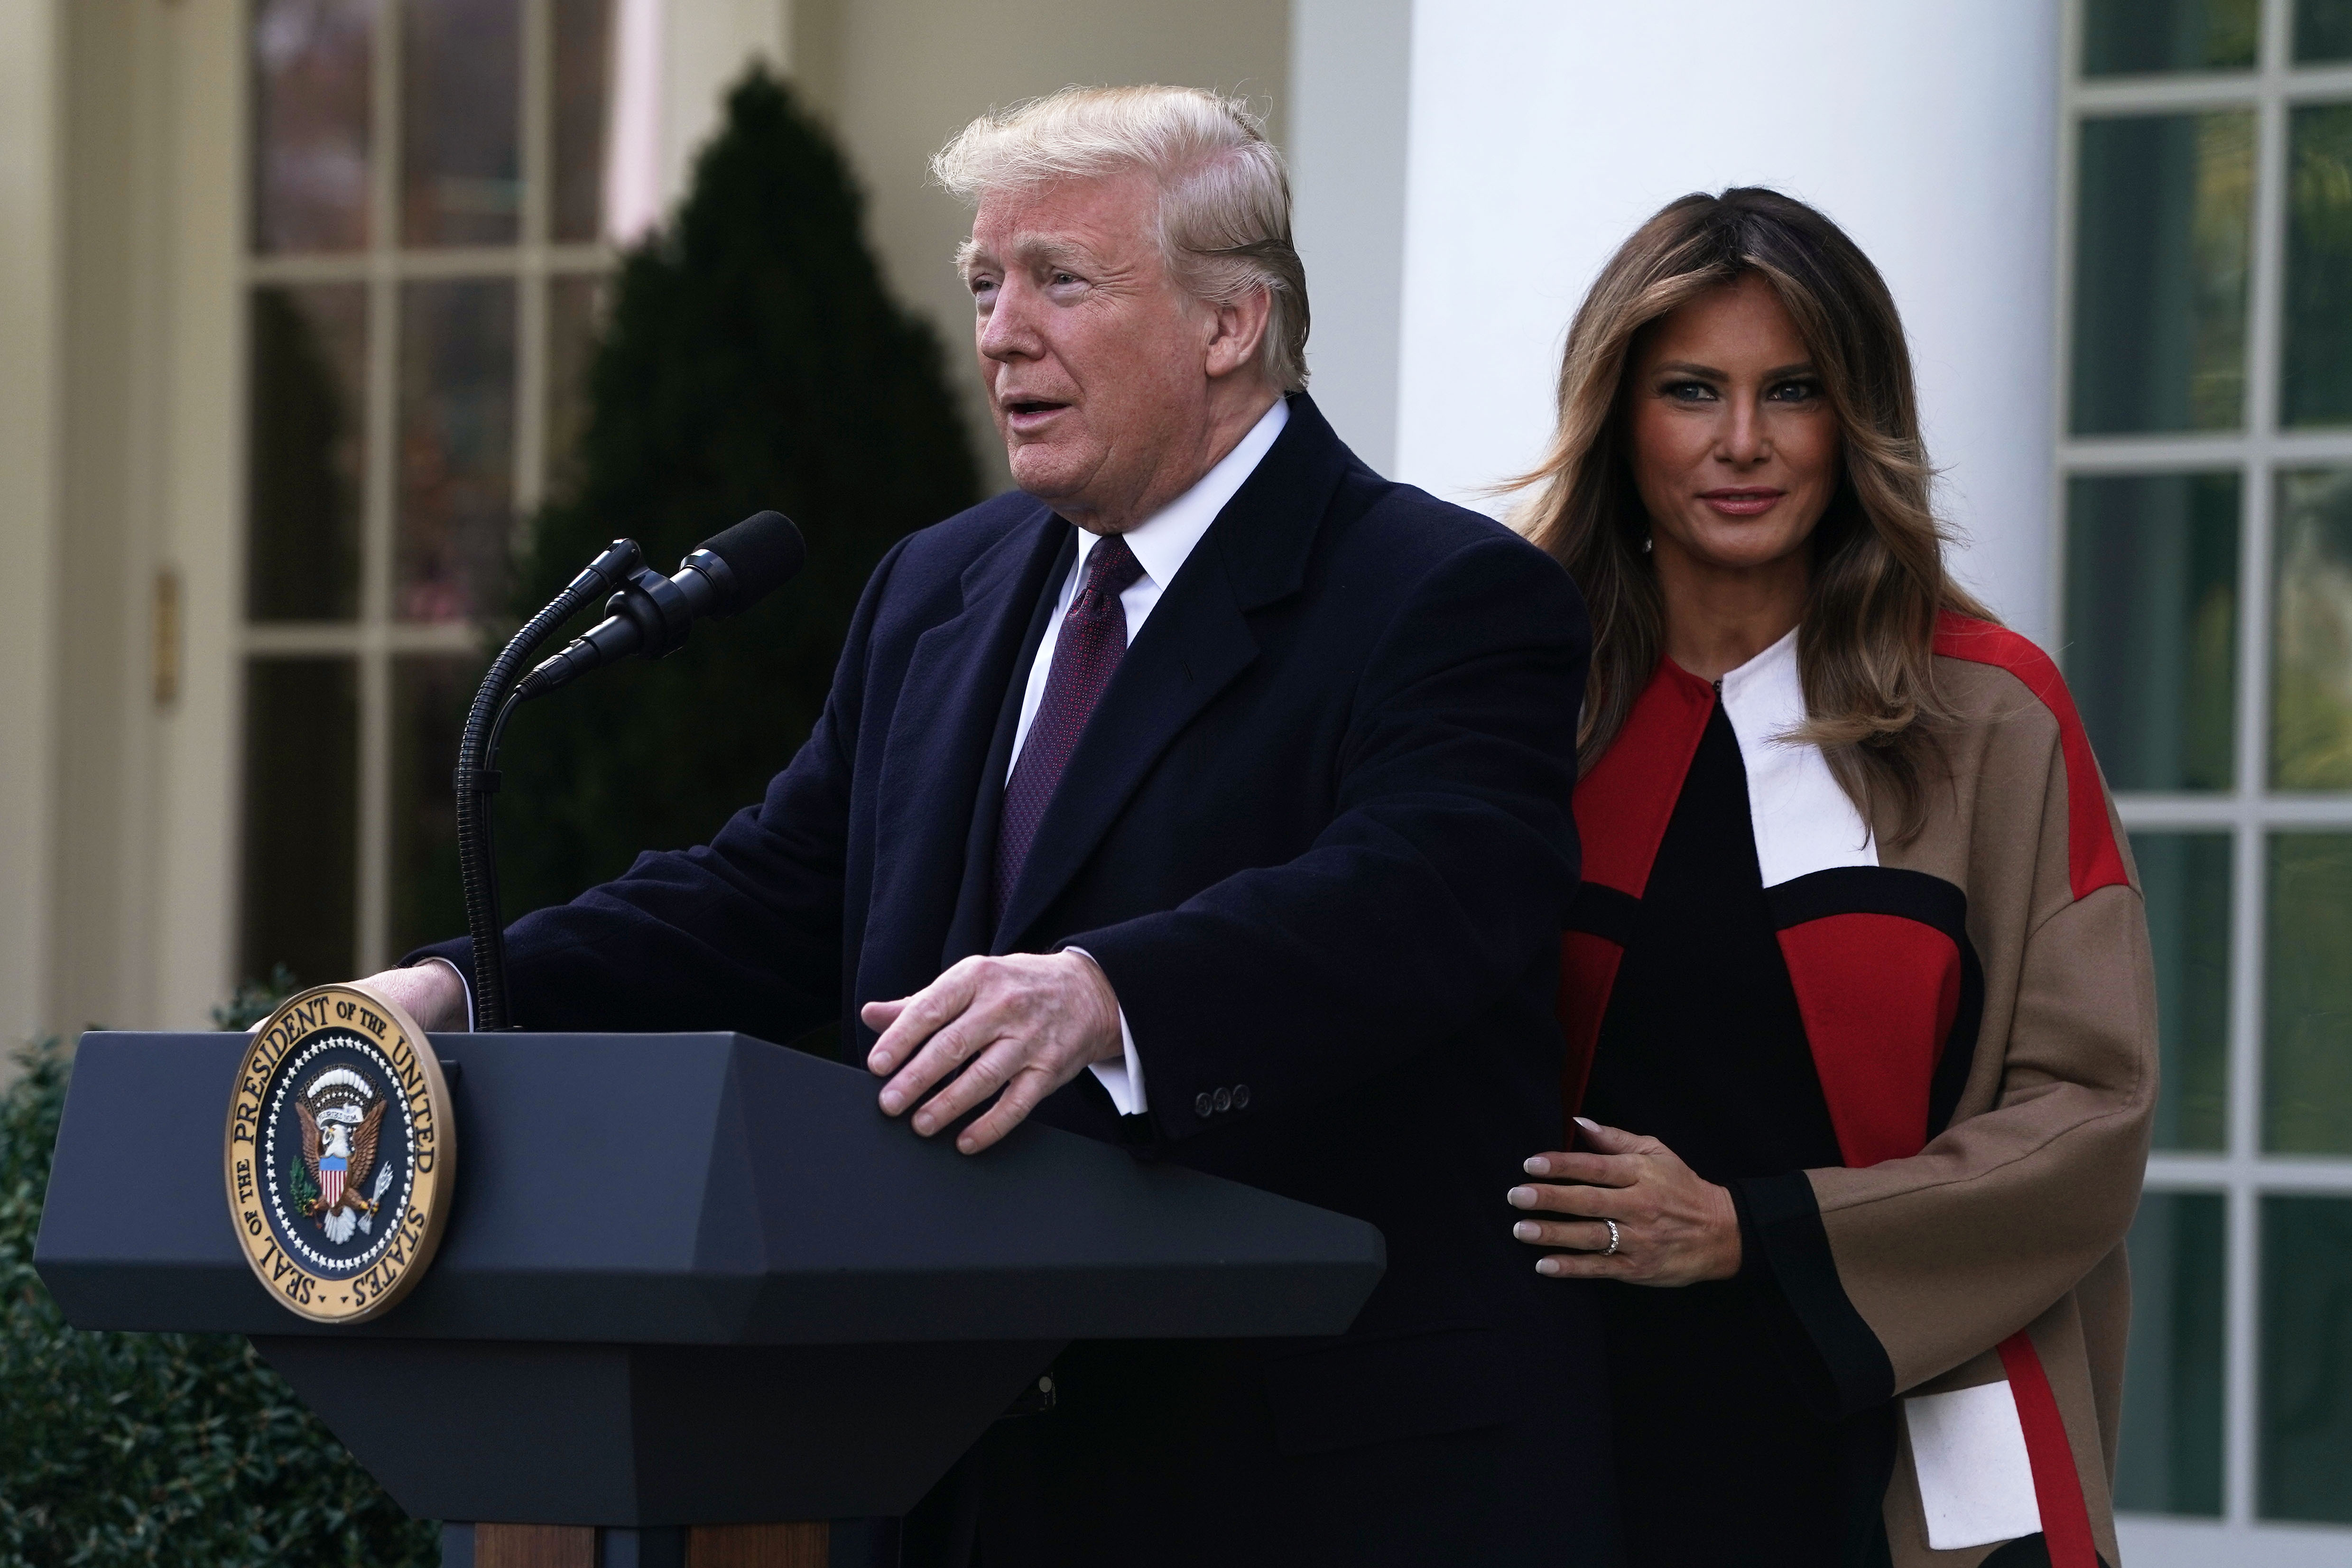 U.S. President Donald Trump (L) and first lady Melania Trump (R) participate in a turkey pardoning event at the Rose Garden of the White House November 20, 2018, in Washington, DC. (Getty)